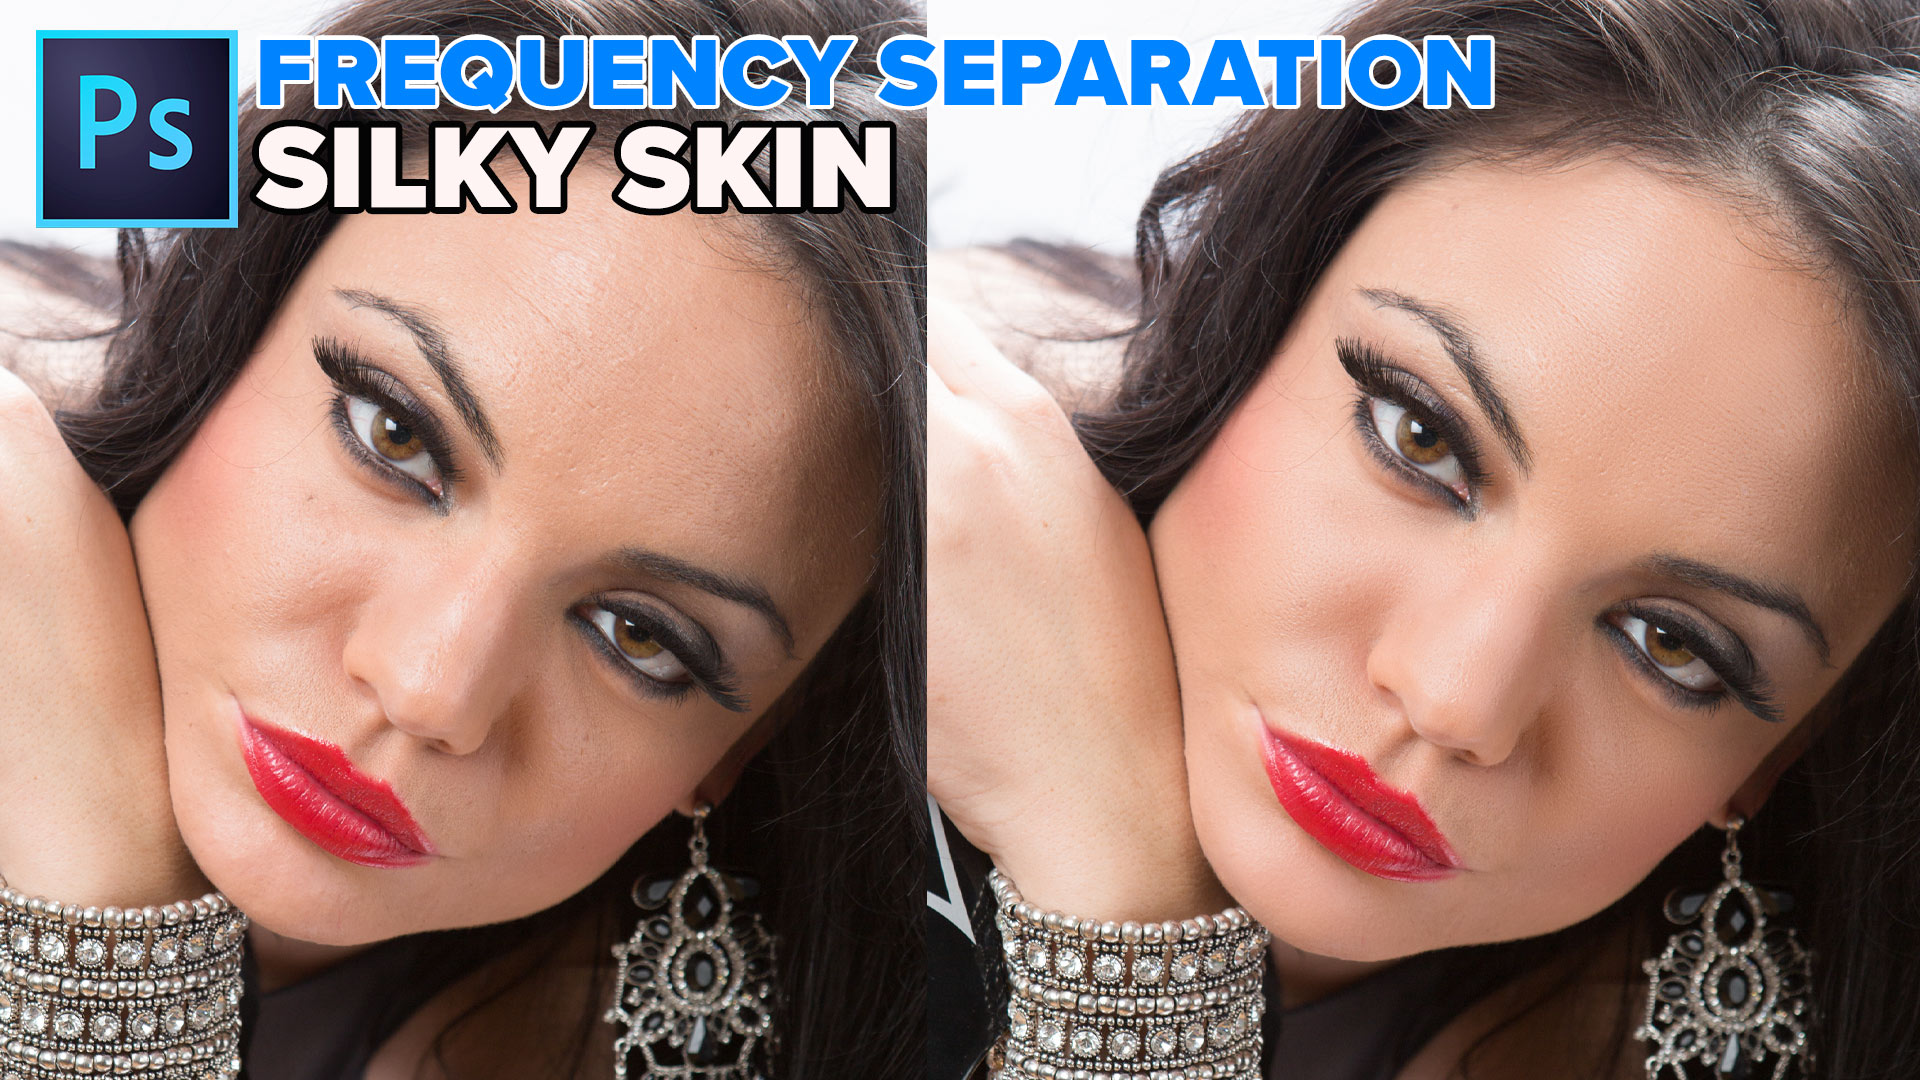 Frequency Separation, silky smooth skin in Photoshop